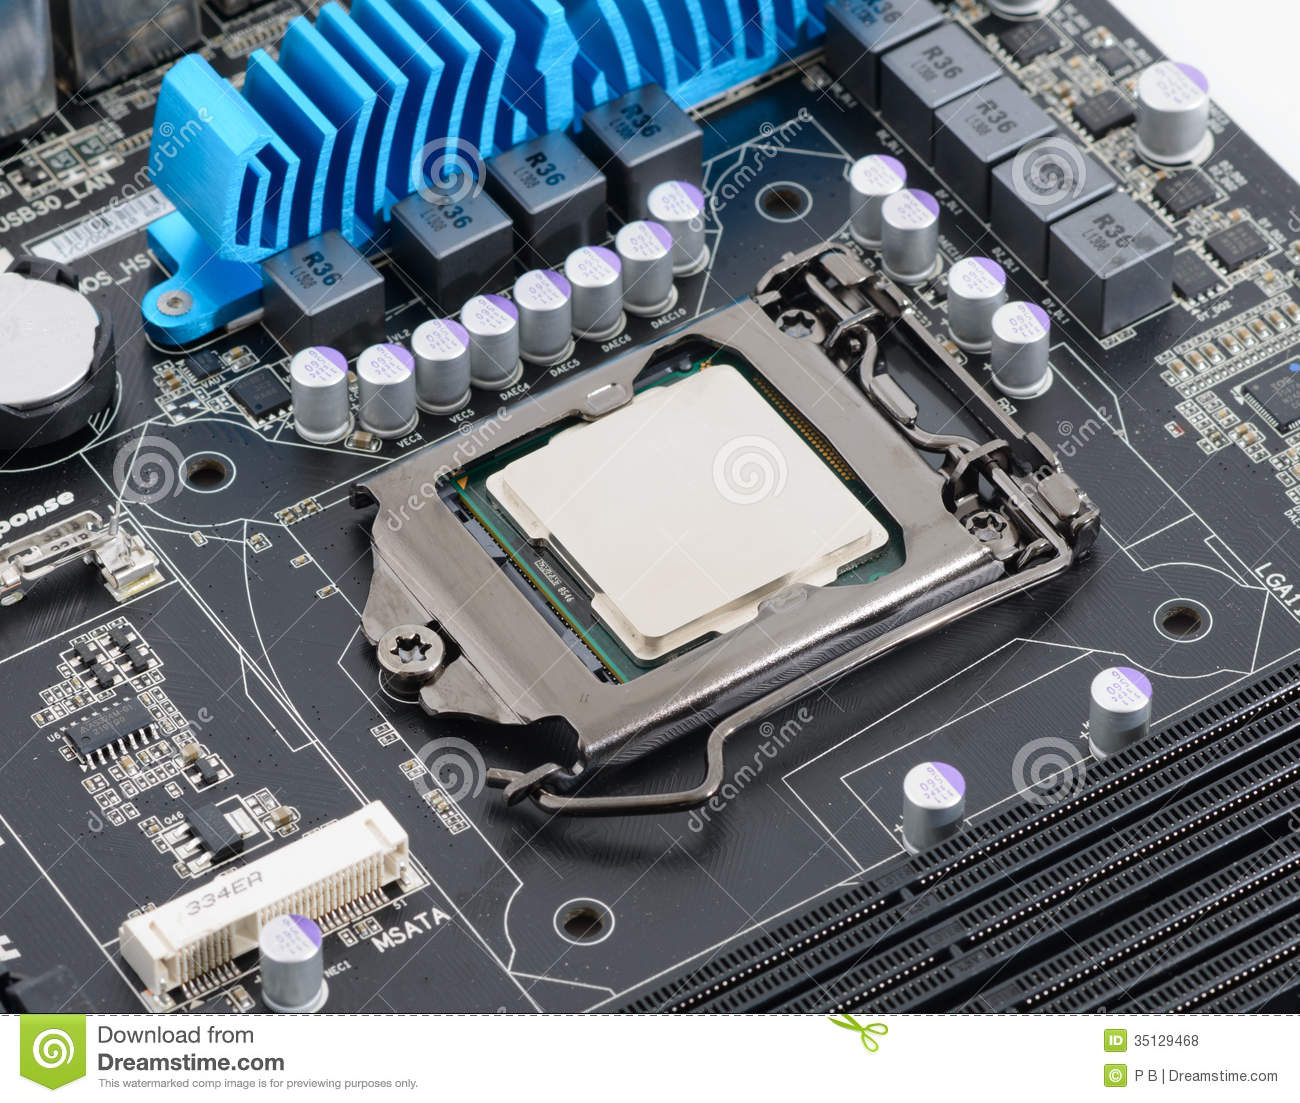 Computer processor stock photo. Image of mother, board - 35129468